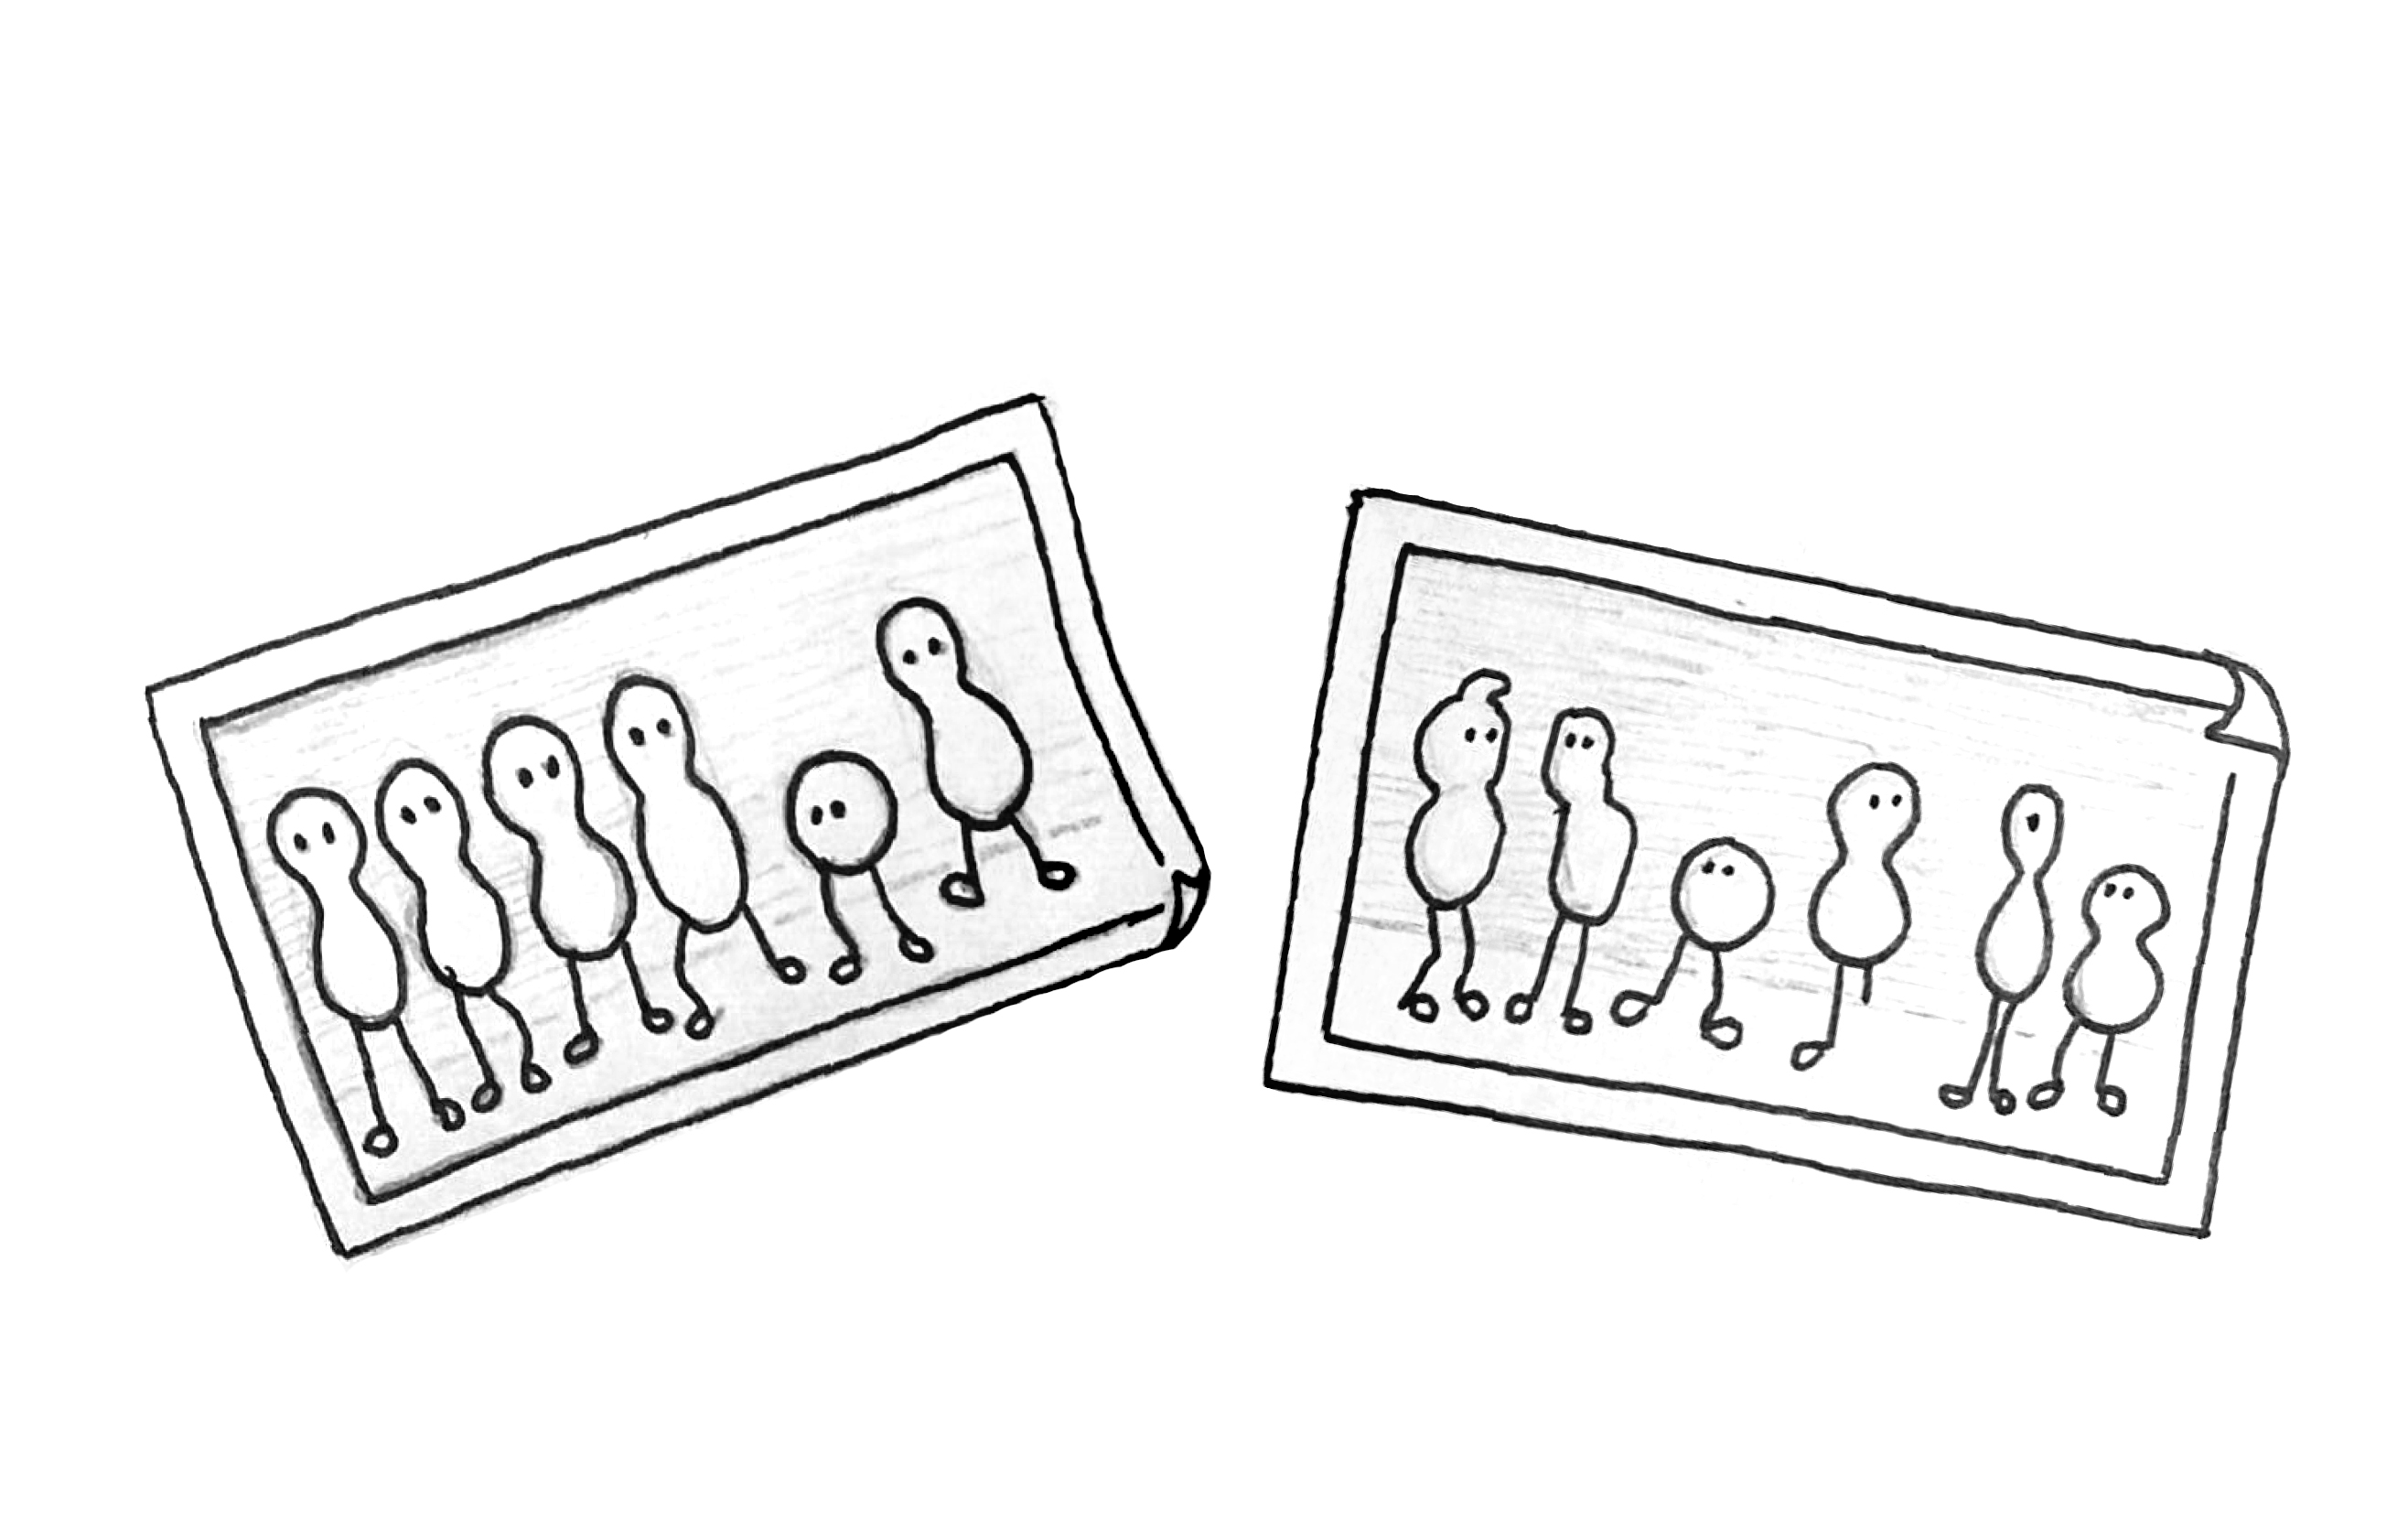 Illustration: Two images, one showing 5 beings that are alike and one that is different, the other one showing 6 different beings.